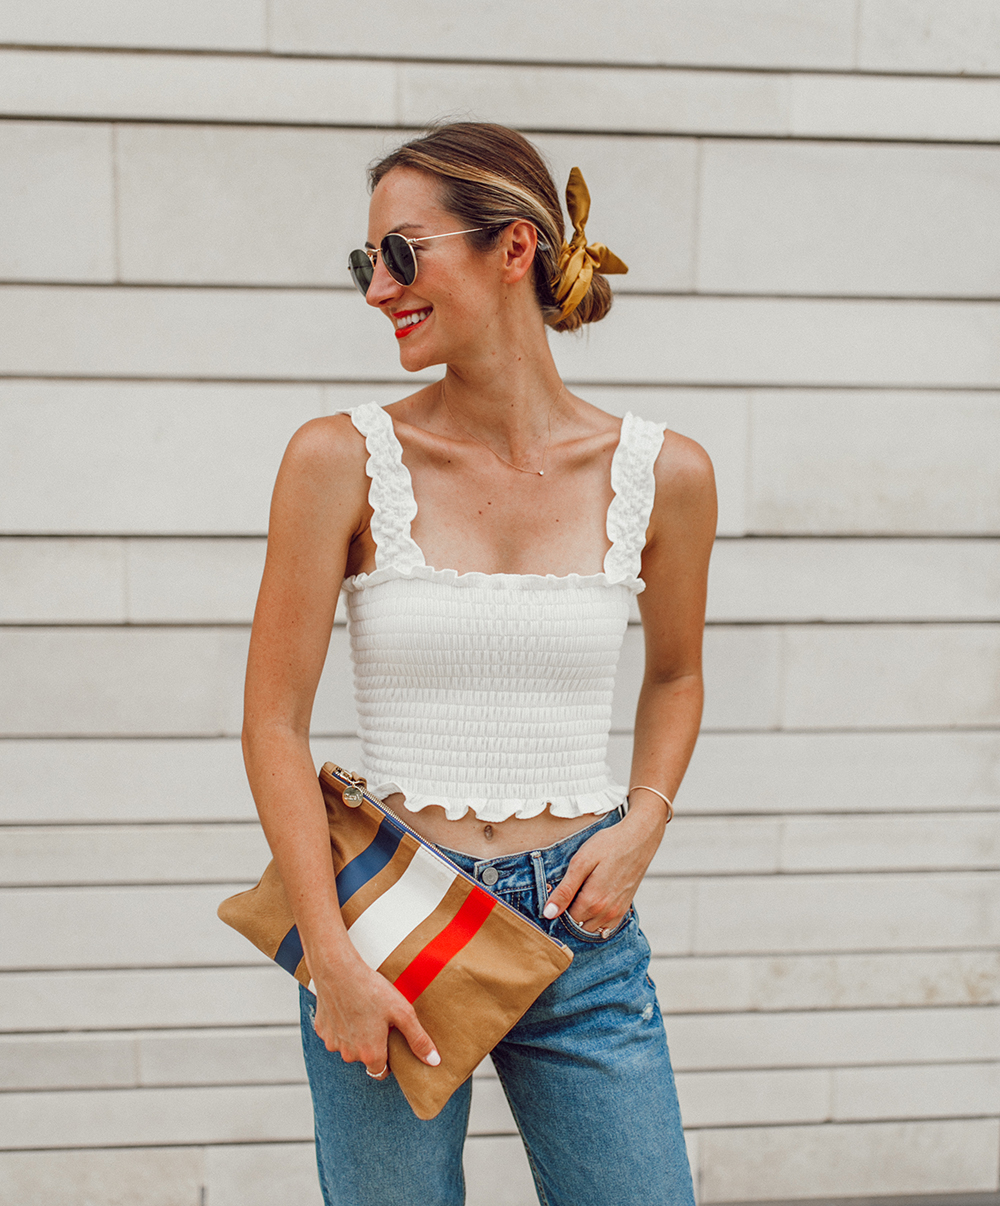 livvyland-blog-olivia-watson-austin-texas-fashion-style-blogger-reformation-tank-top-girlfriend-high-rise-jeans-hair-scarf-summer-outfit-9